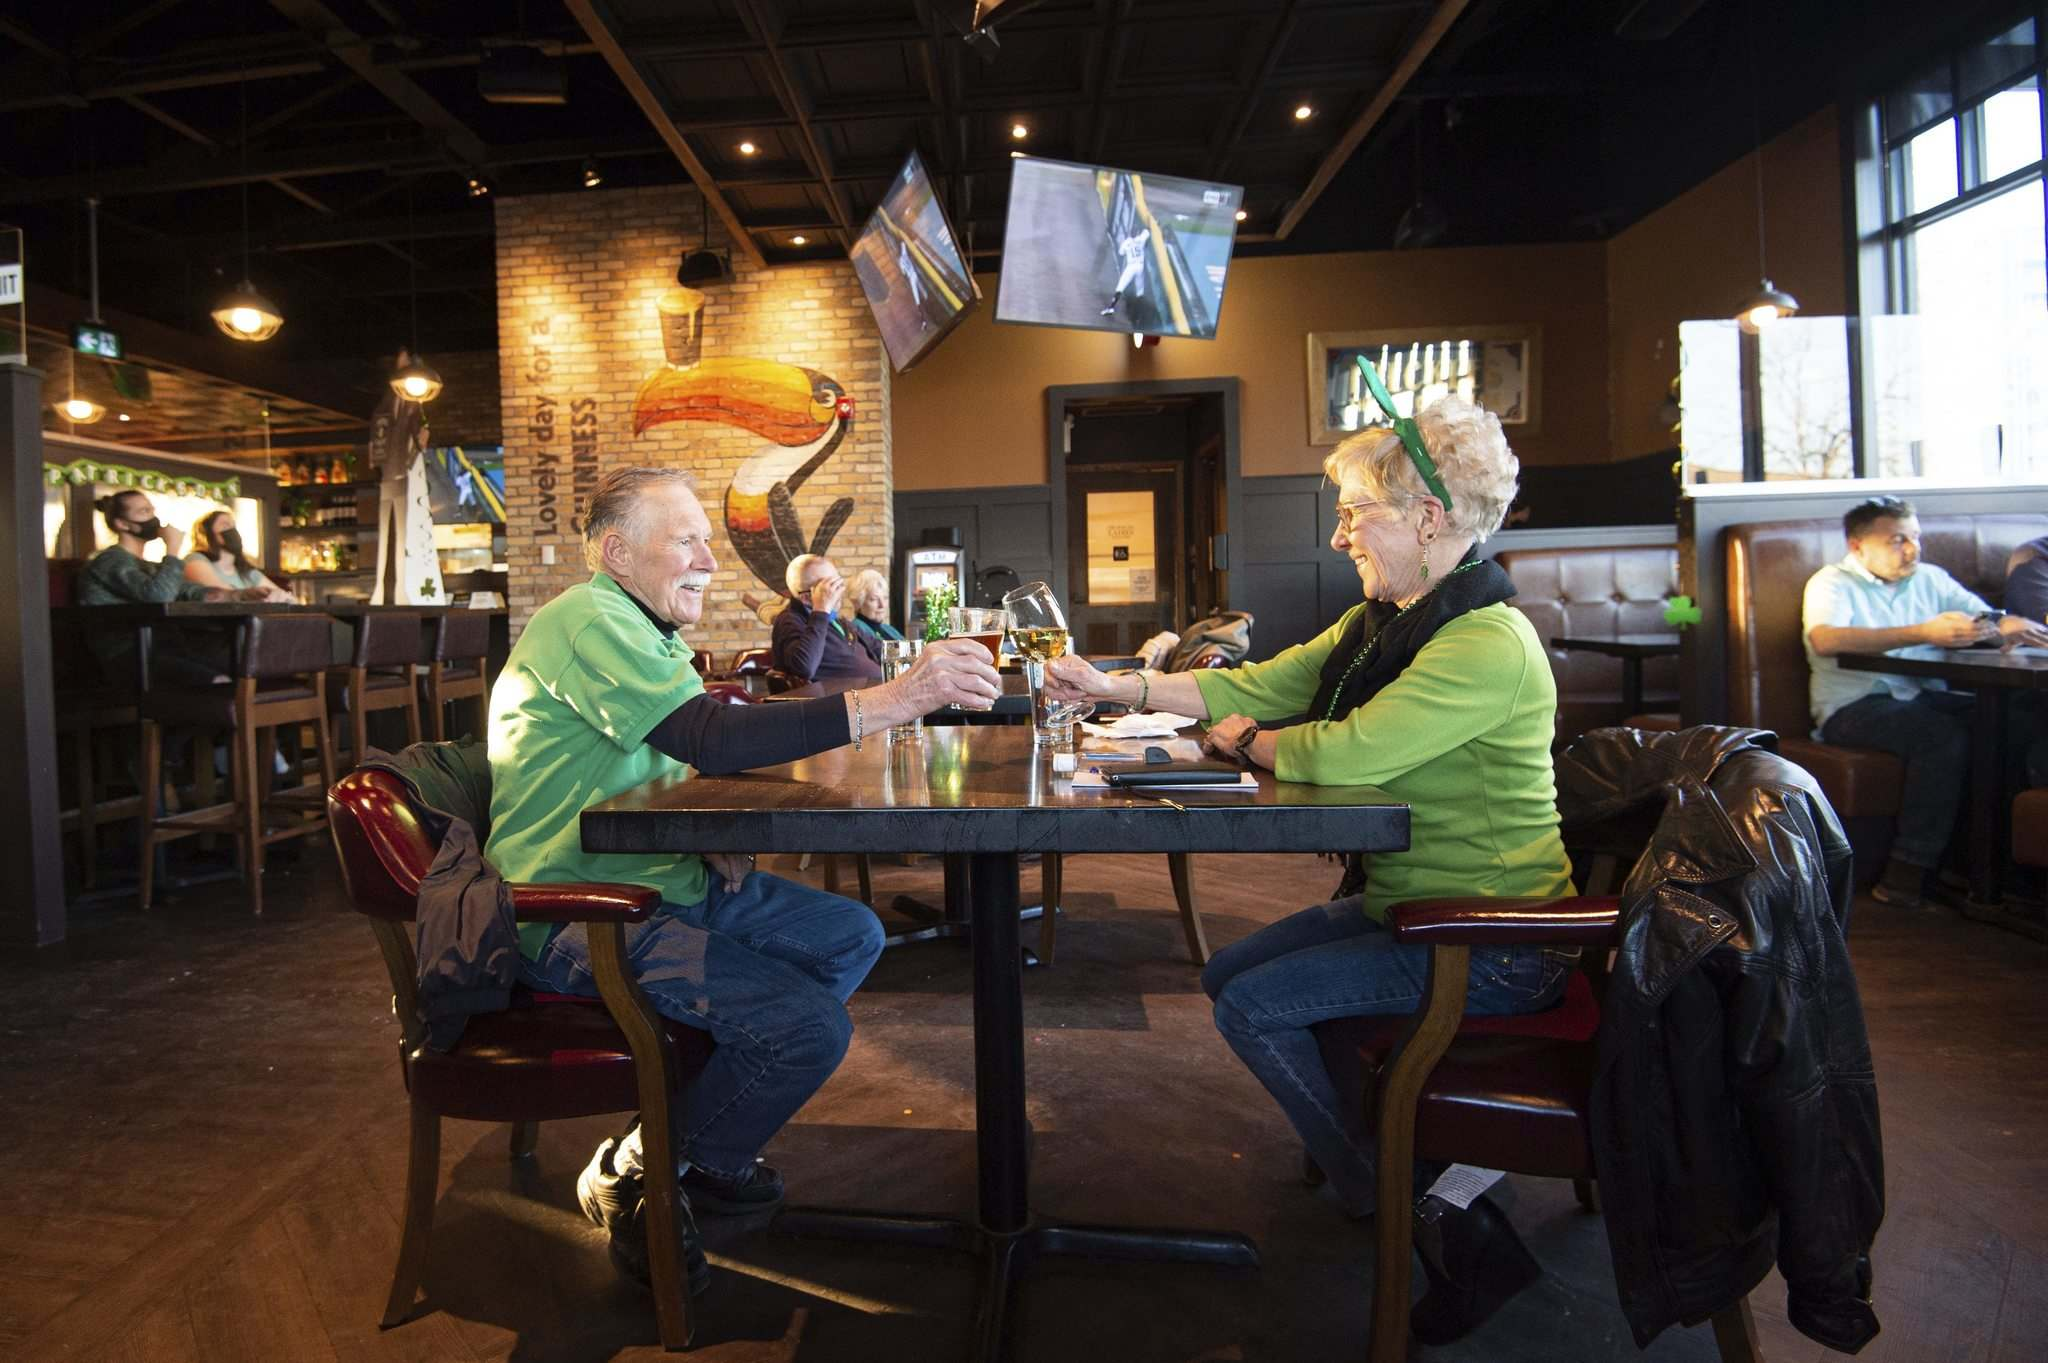 MIKE SUDOMA / WINNIPEG FREE PRESS </p><p>Don and Ethel McCully enjoy some time away from home as they celebrate St. Patrick's Day together at Fionn MacCool's on Grant Avenue Wednesday.</p>